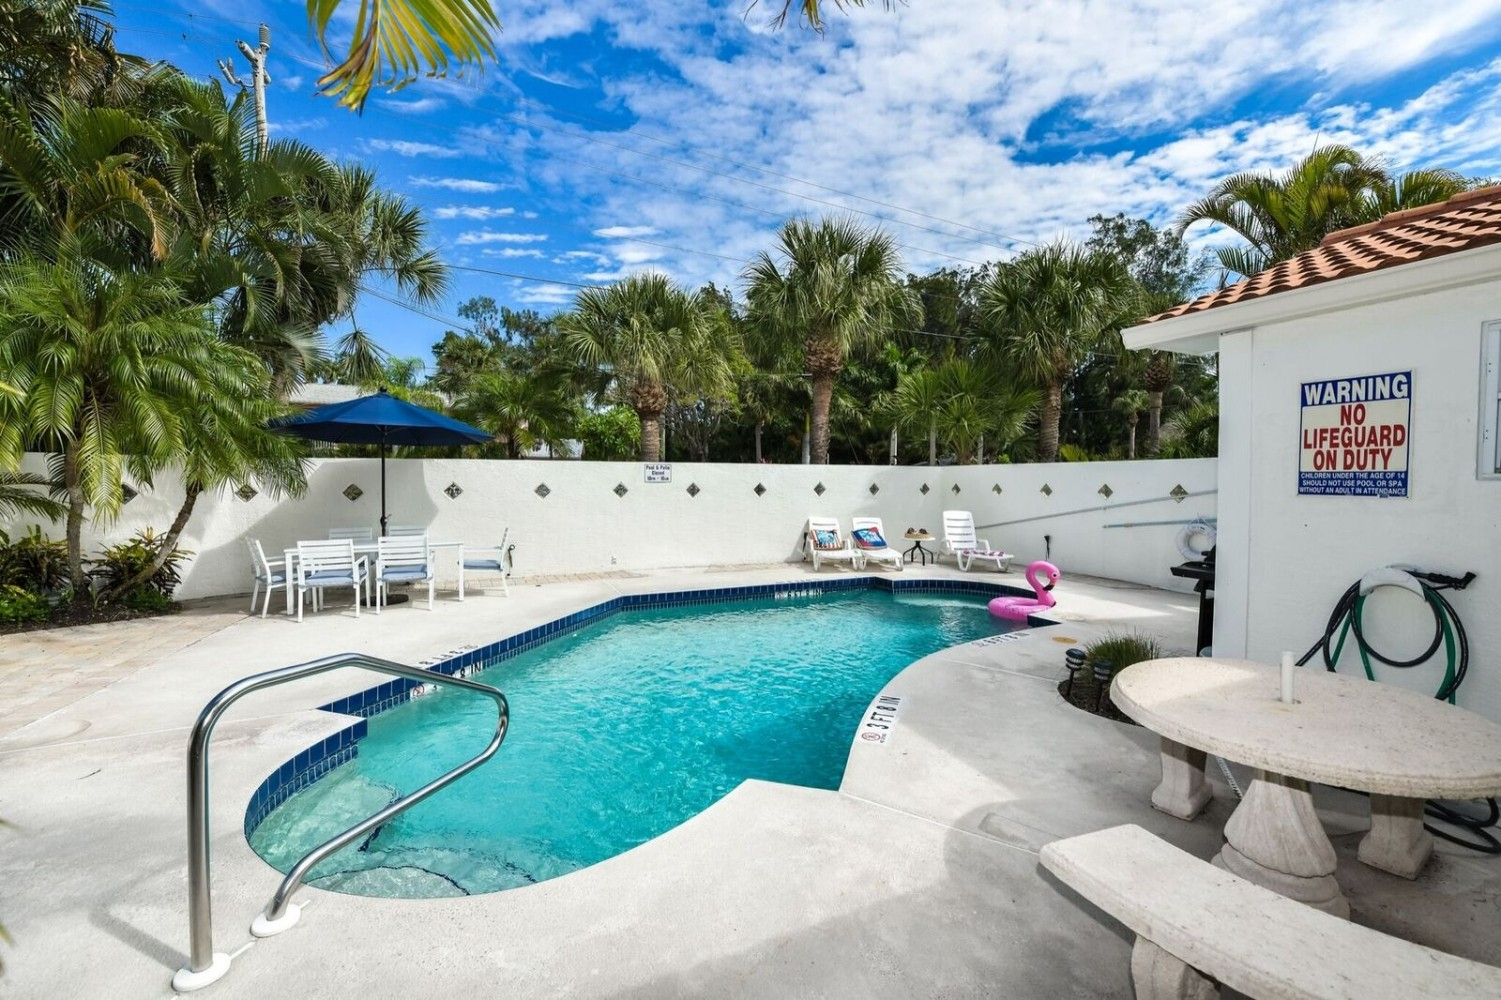 2 Bedroom, 2 Bath - Siesta Key Vacation Rentals